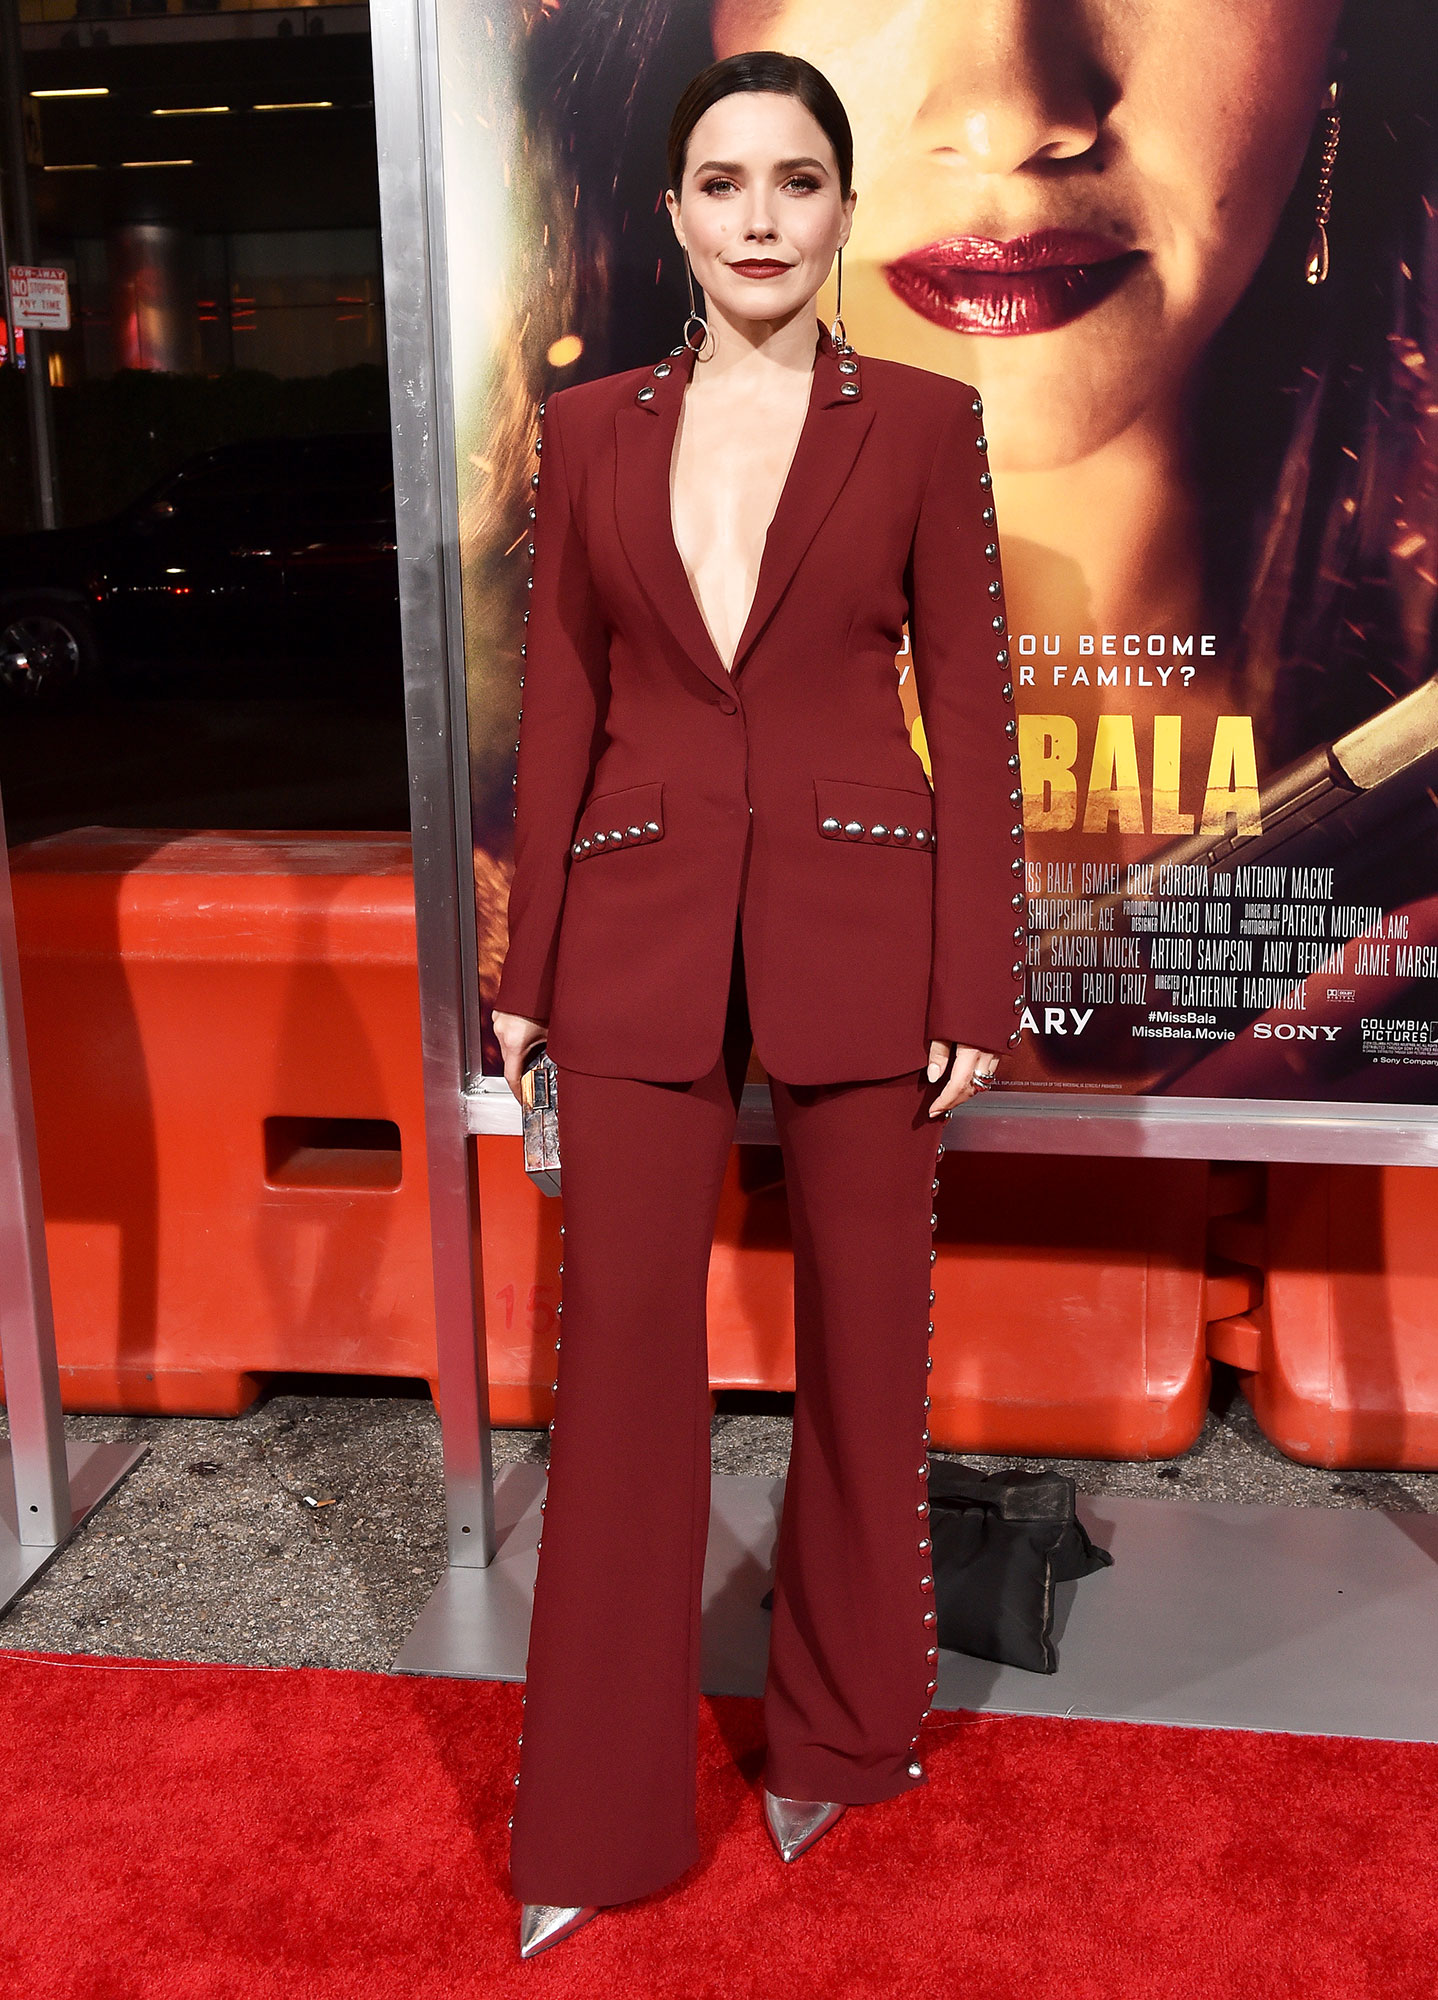 Stylish Burgundy Sophia Bush - In a crepe Cinq à Sept suit on Jan. 30.